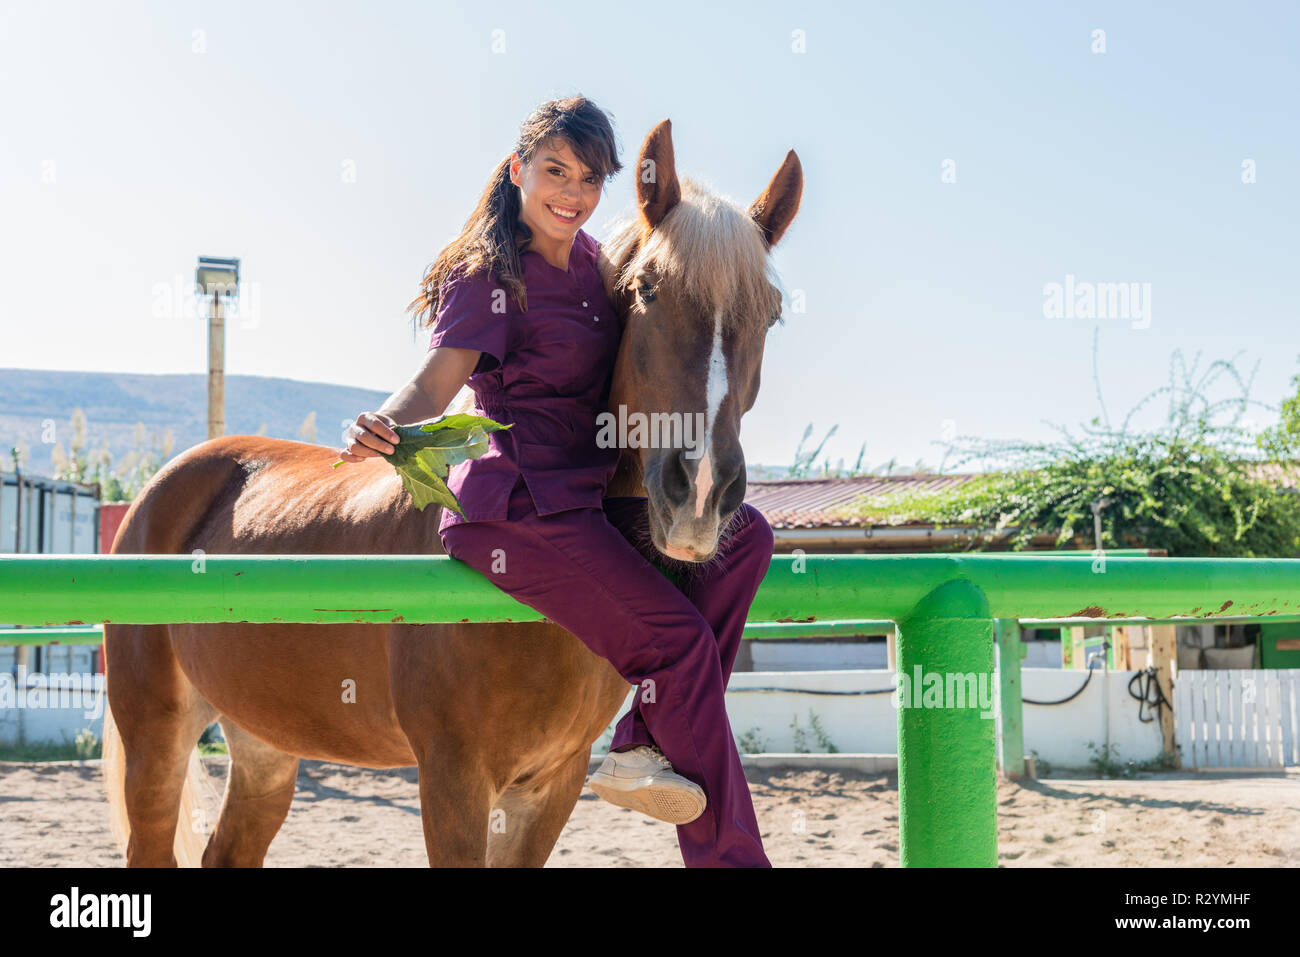 Young woman  veterinarian doctor feeding a brown horse outdoor. Equestrian healthcare medical concept. - Stock Image